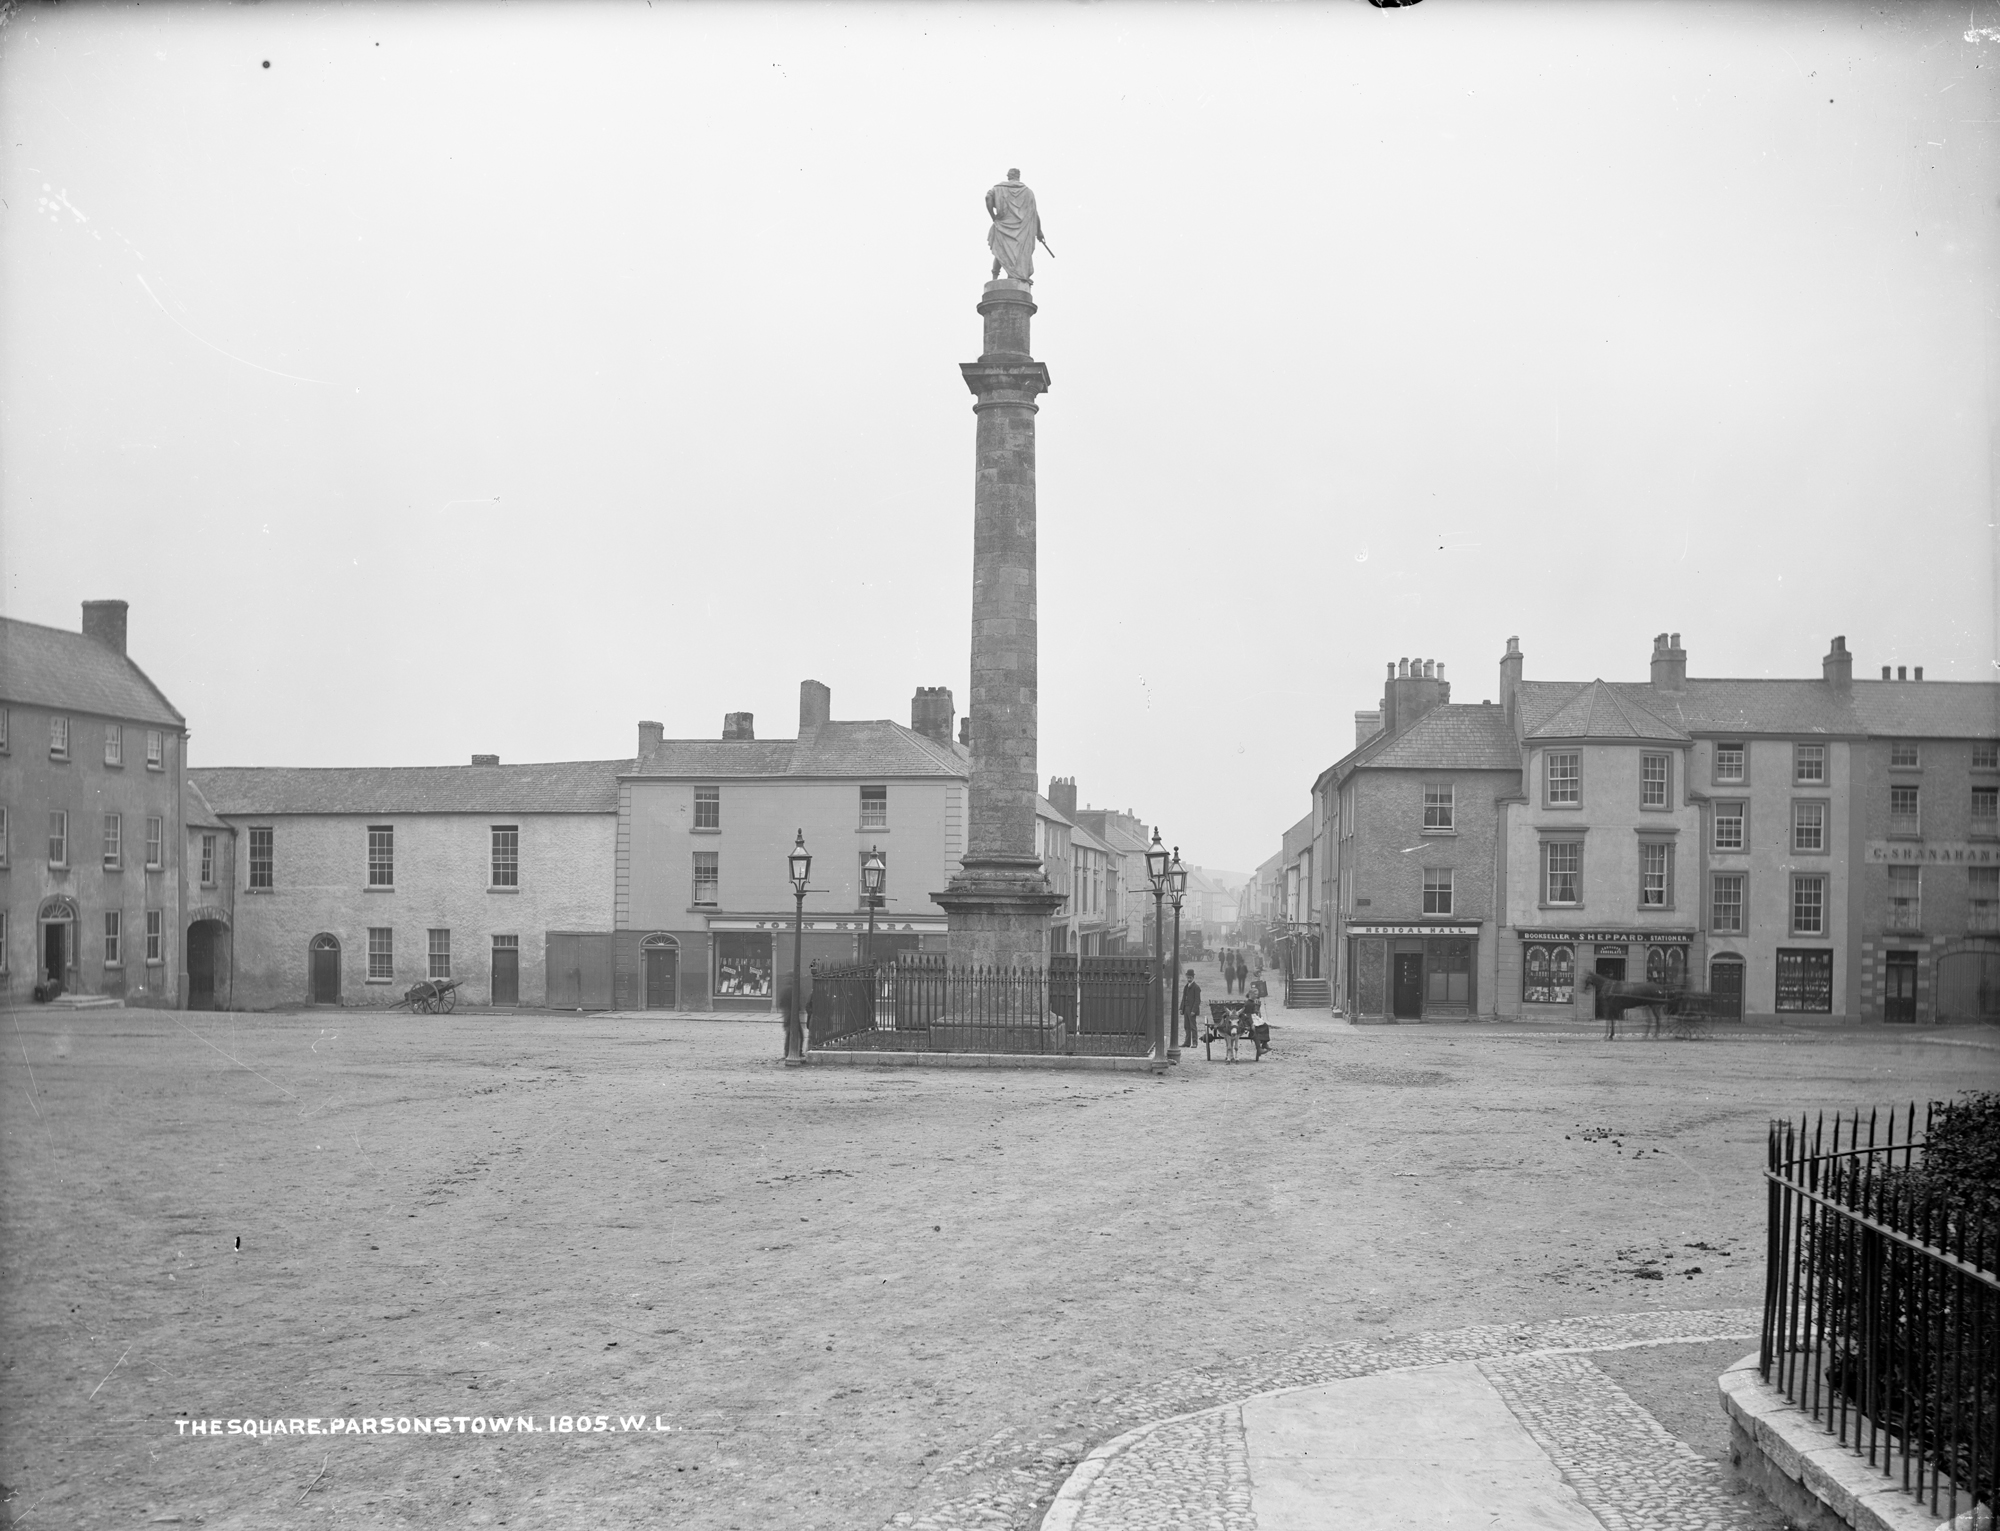 The Square, Parsonstown (Birr, Co Offaly)